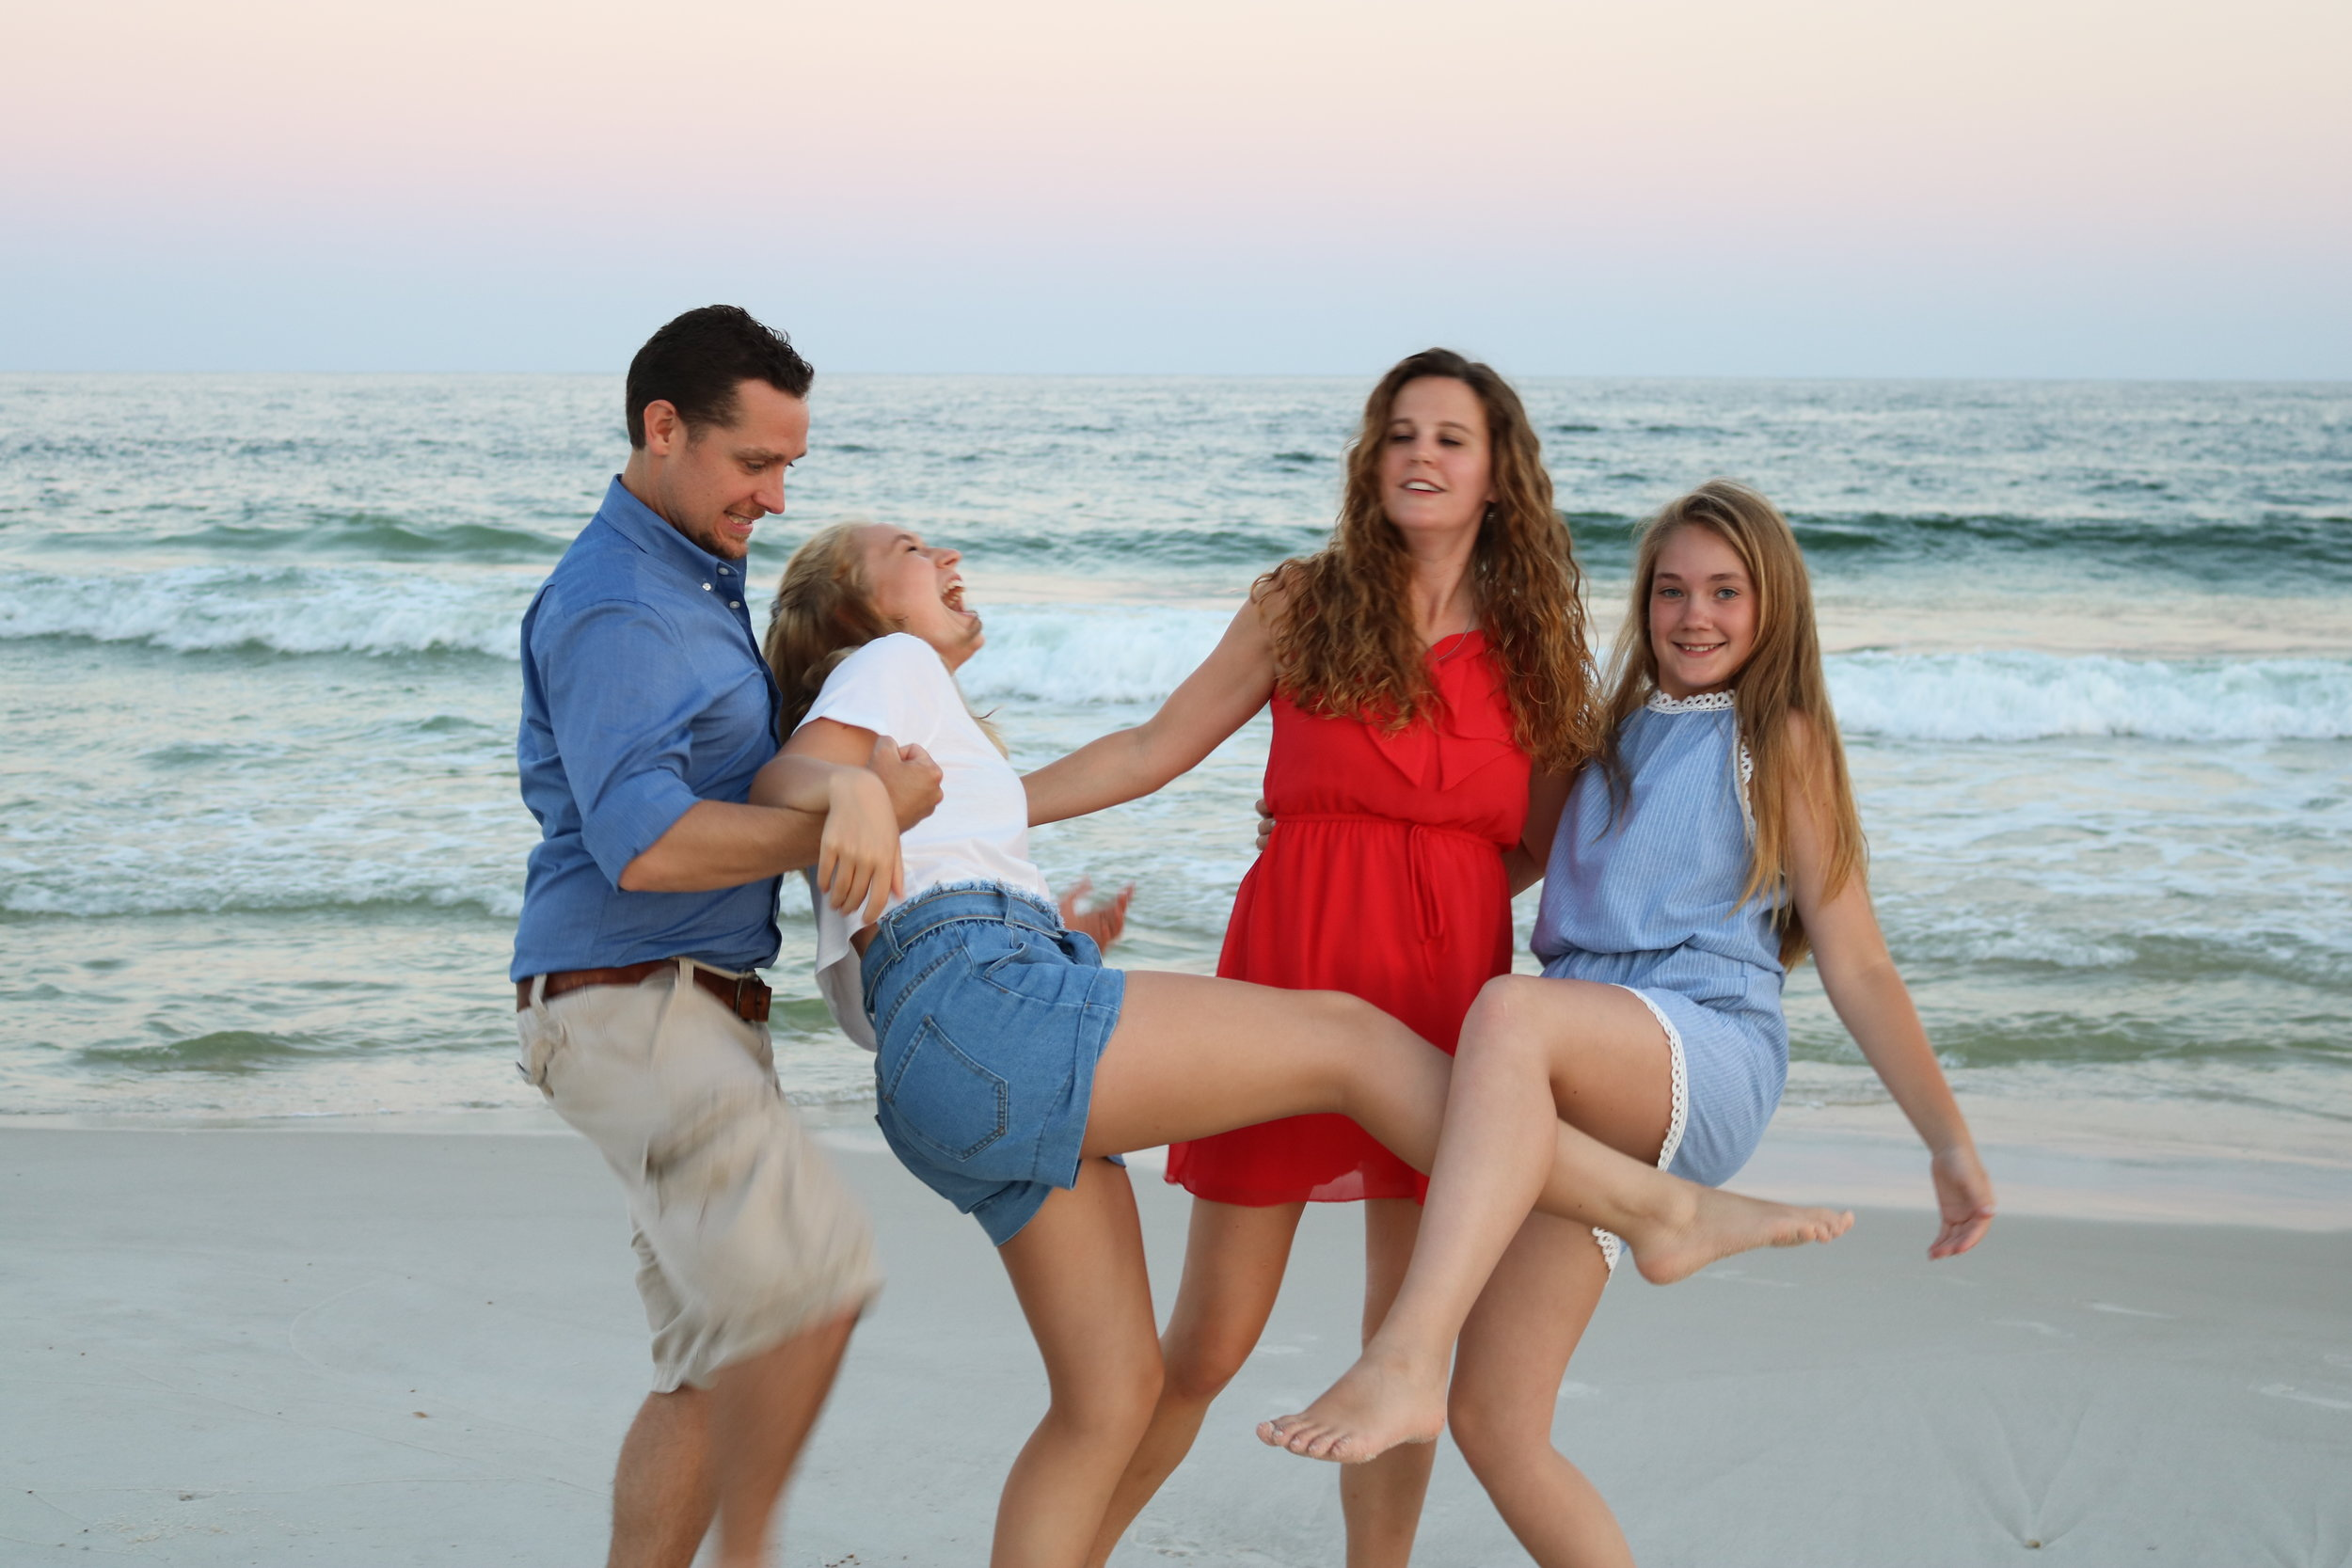 Sometimes this is what family life is like: goofy, unpolished, and yet full of laughter!